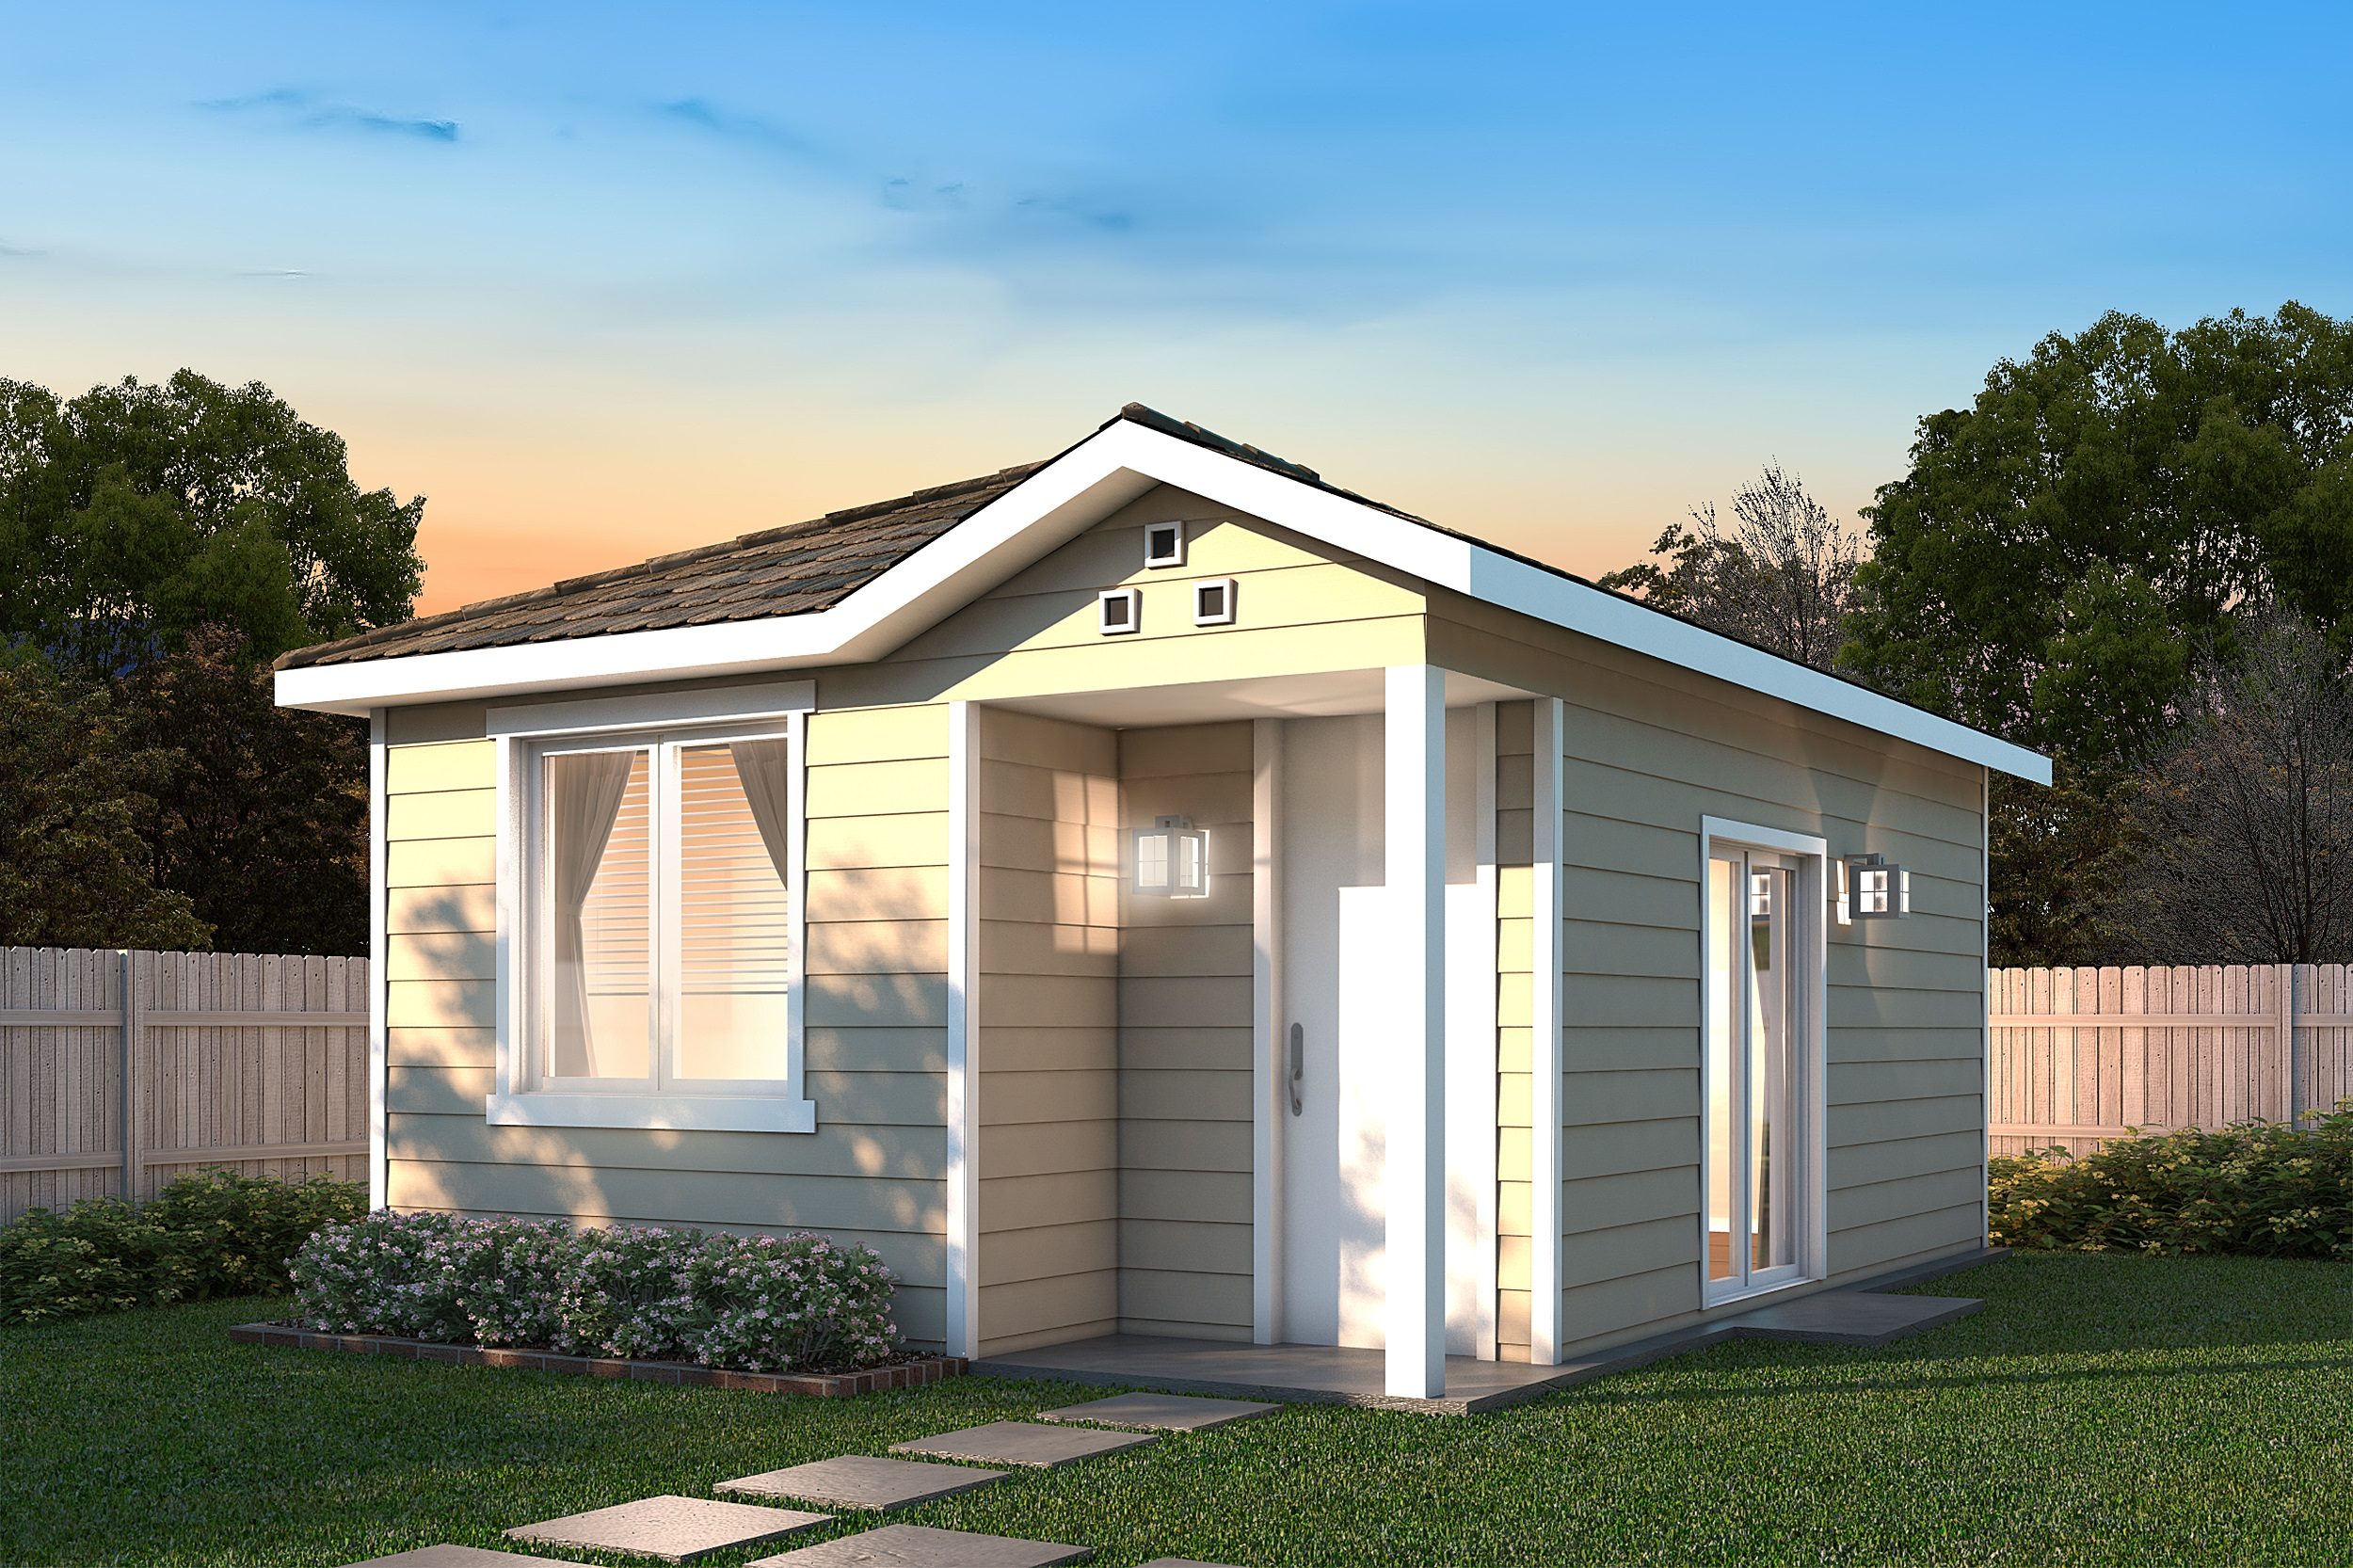 G j gardner homes debuts 10 new granny flat designs for Prefab granny unit california